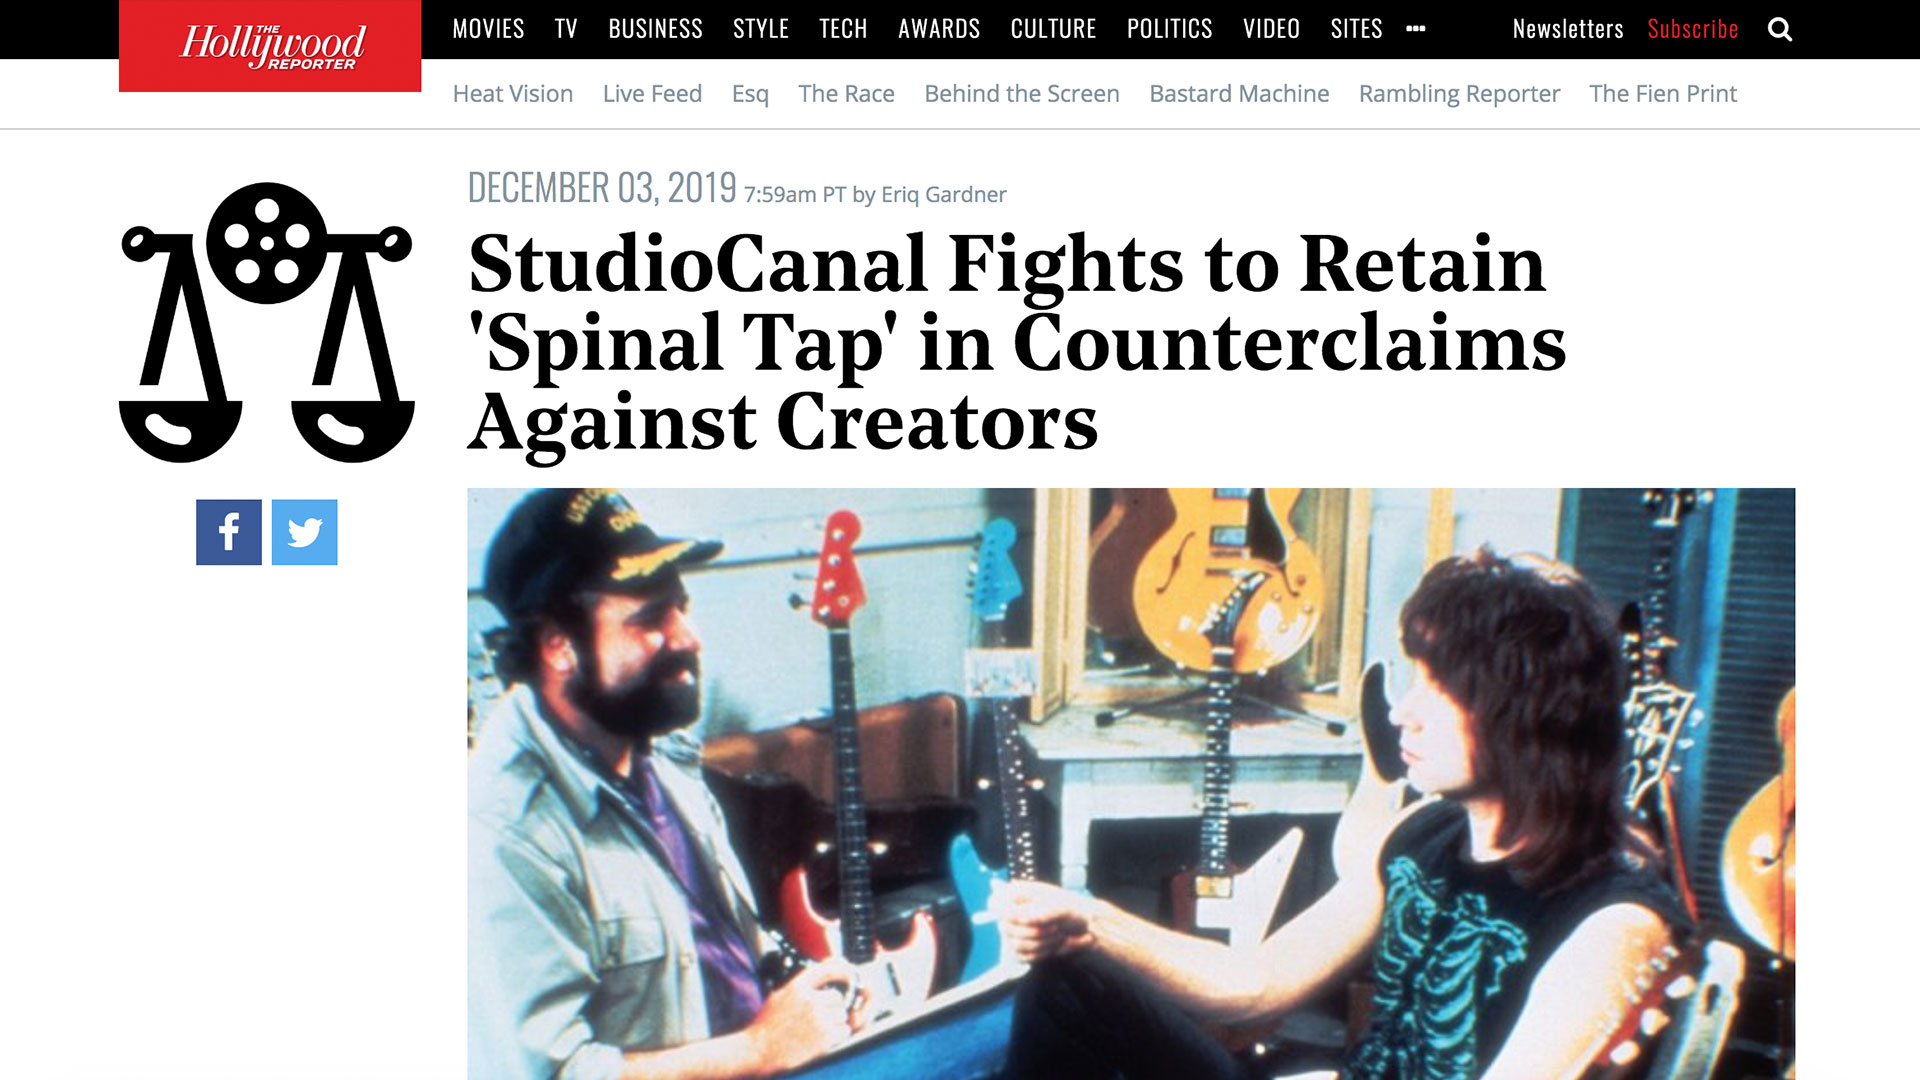 Fairness Rocks News StudioCanal Fights to Retain 'Spinal Tap' in Counterclaims Against Creators